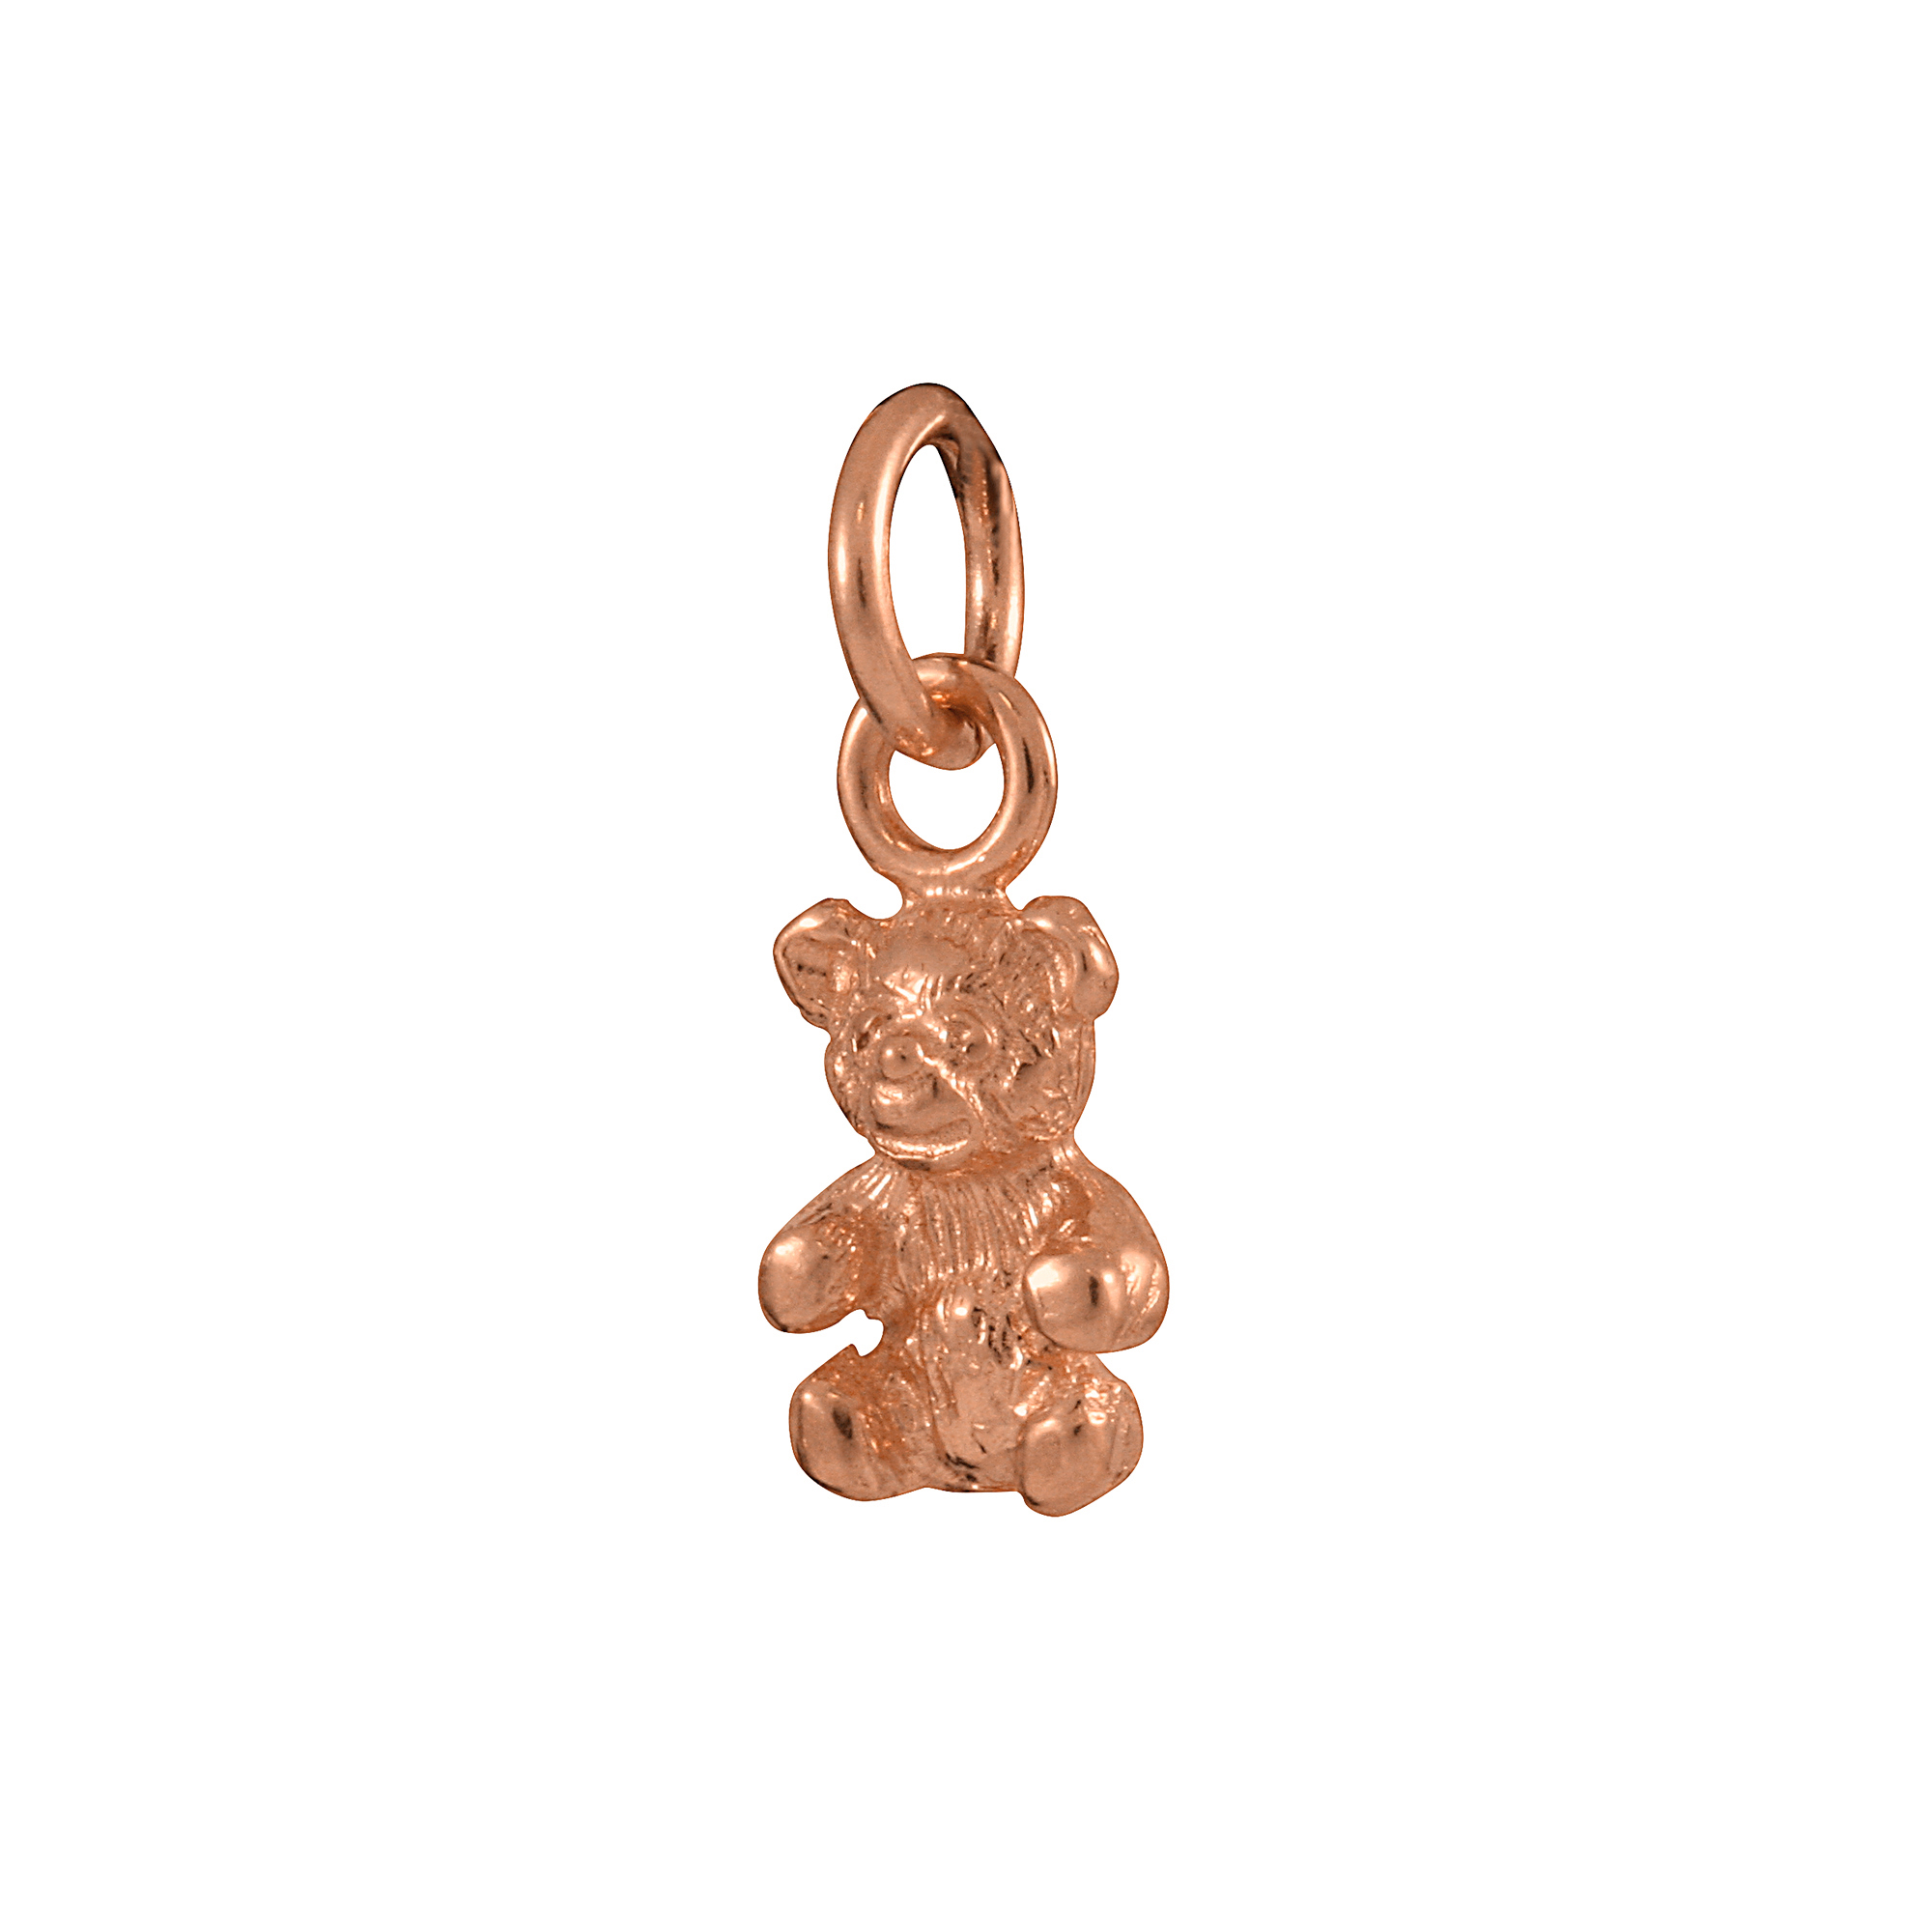 An image of 9ct Rose Gold Teddy Bear Charm